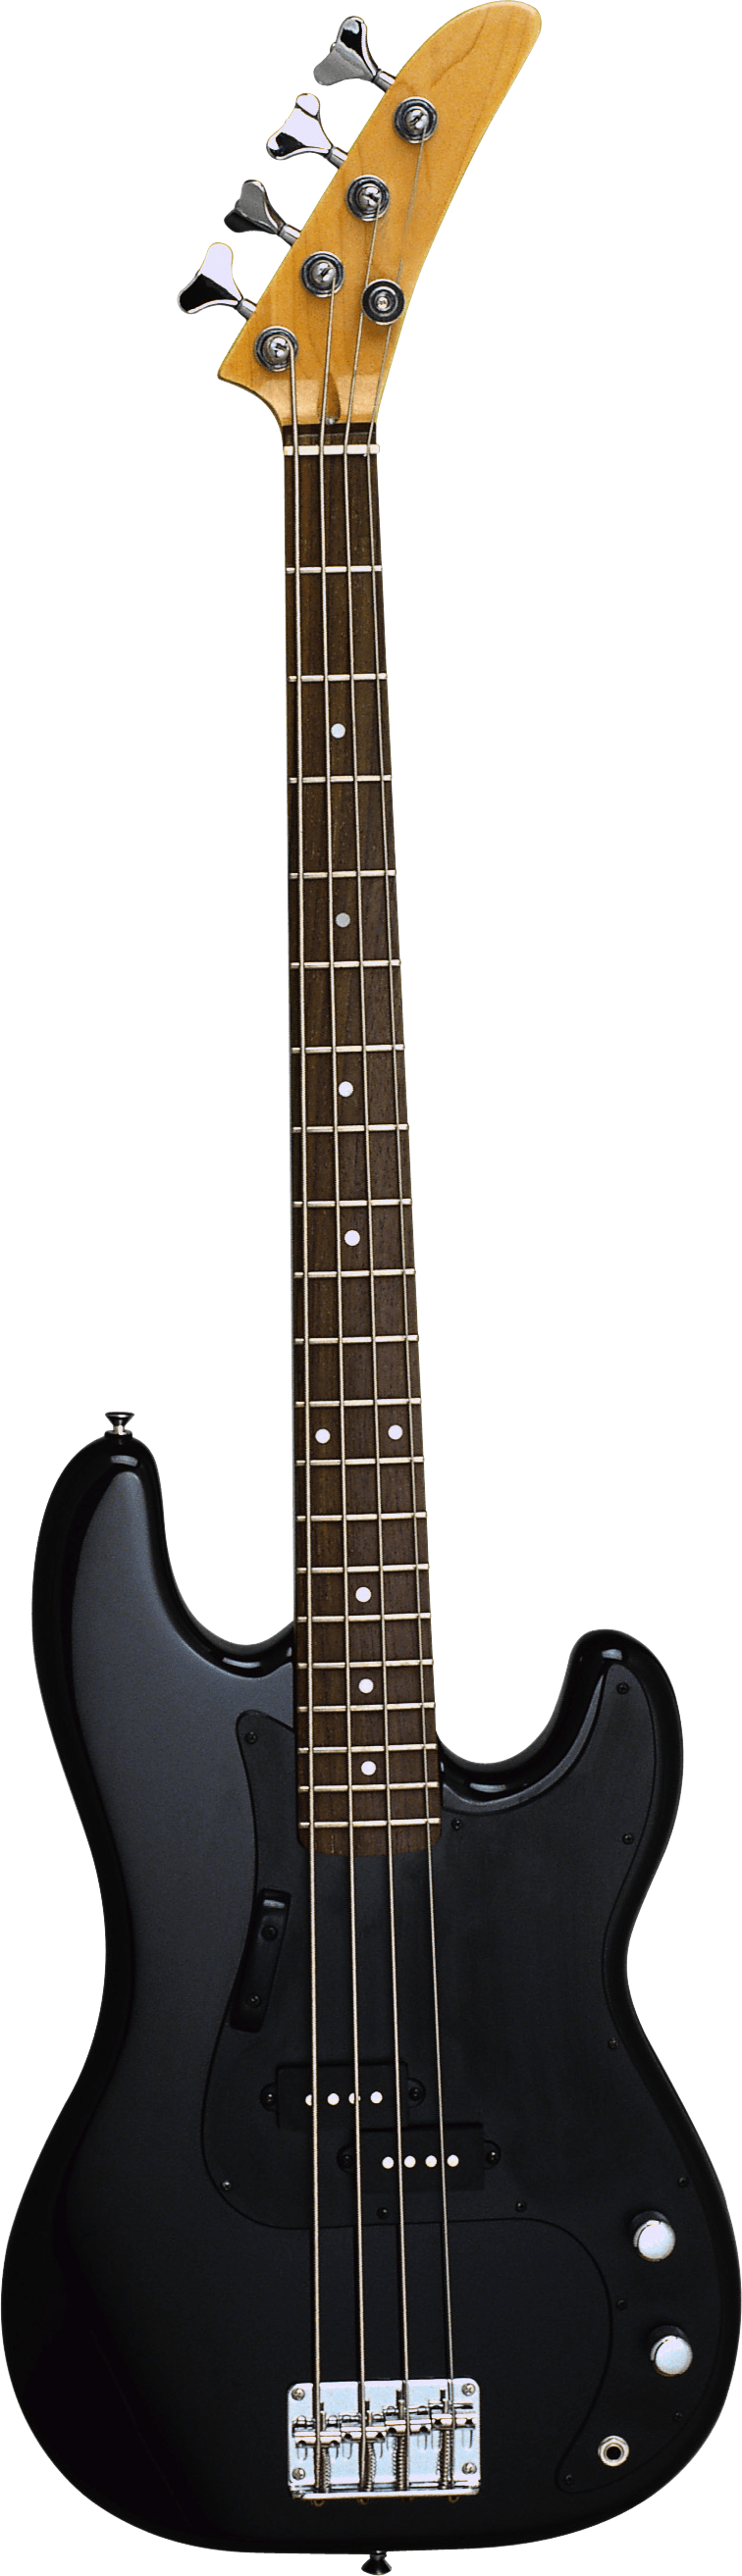 Black Electric Guitar Png Image PNG Image